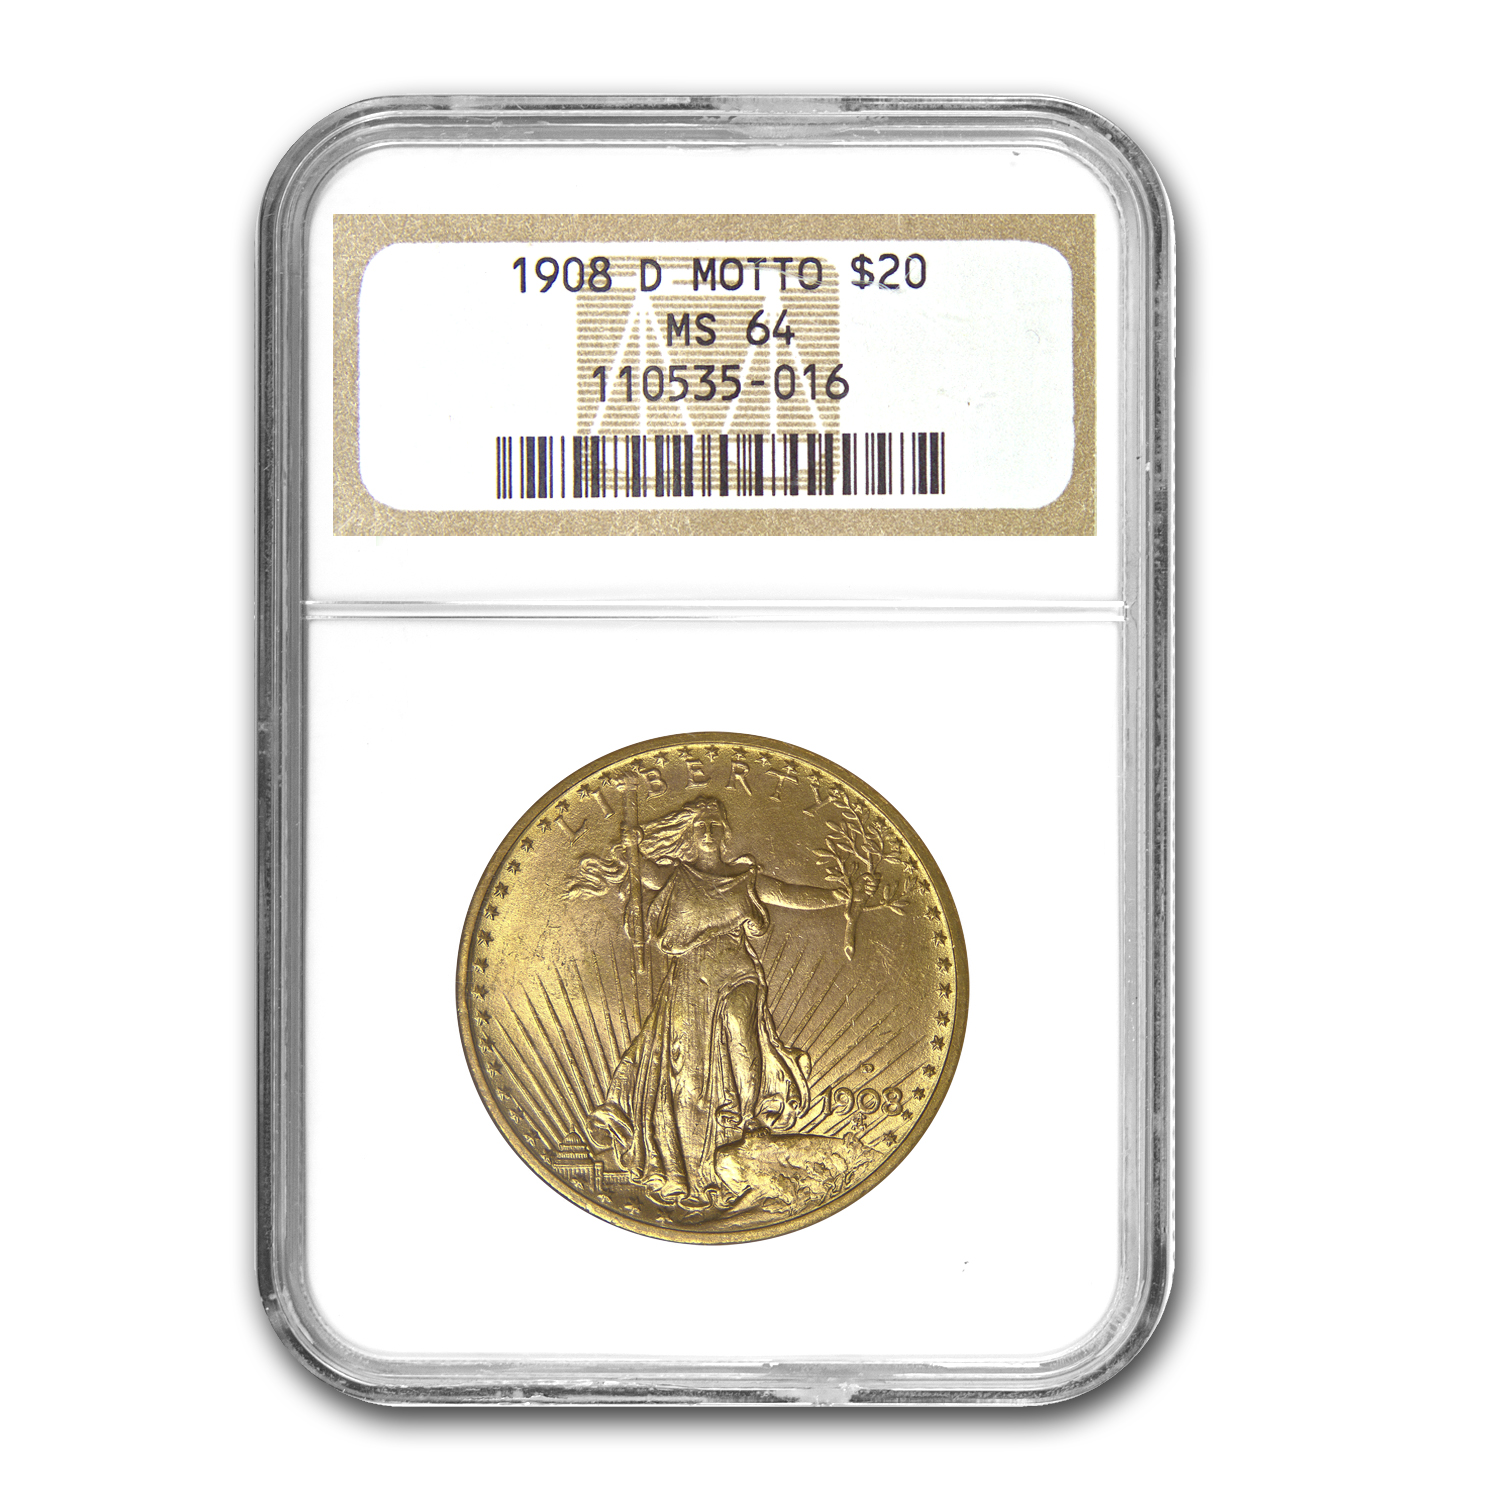 1908-D $20 St. Gaudens Gold - With Motto - MS-64 NGC